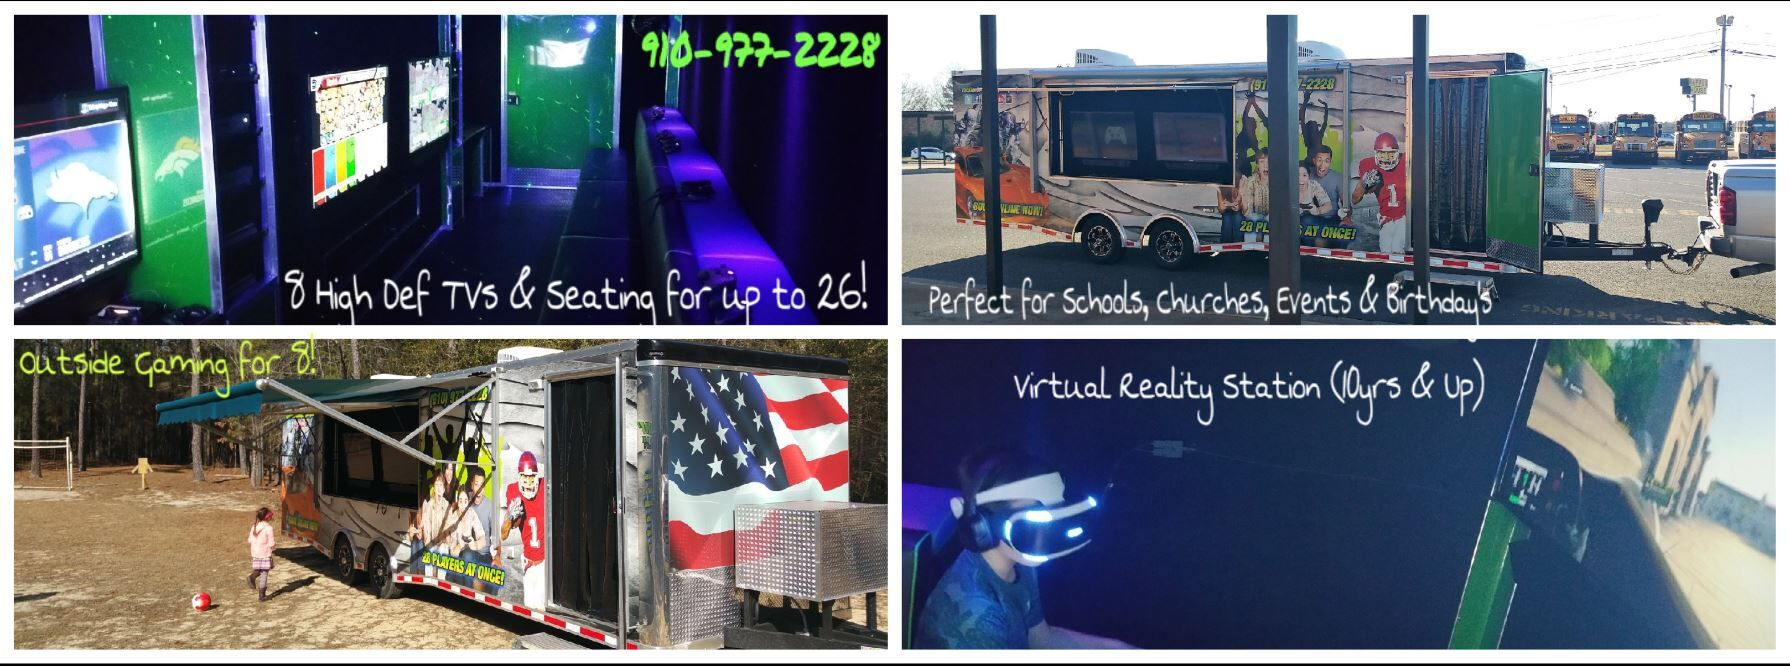 Video game party truck trailer in North Carolina - Fayetteville, Pinehurst, Lee County, Scotland County, Moore County